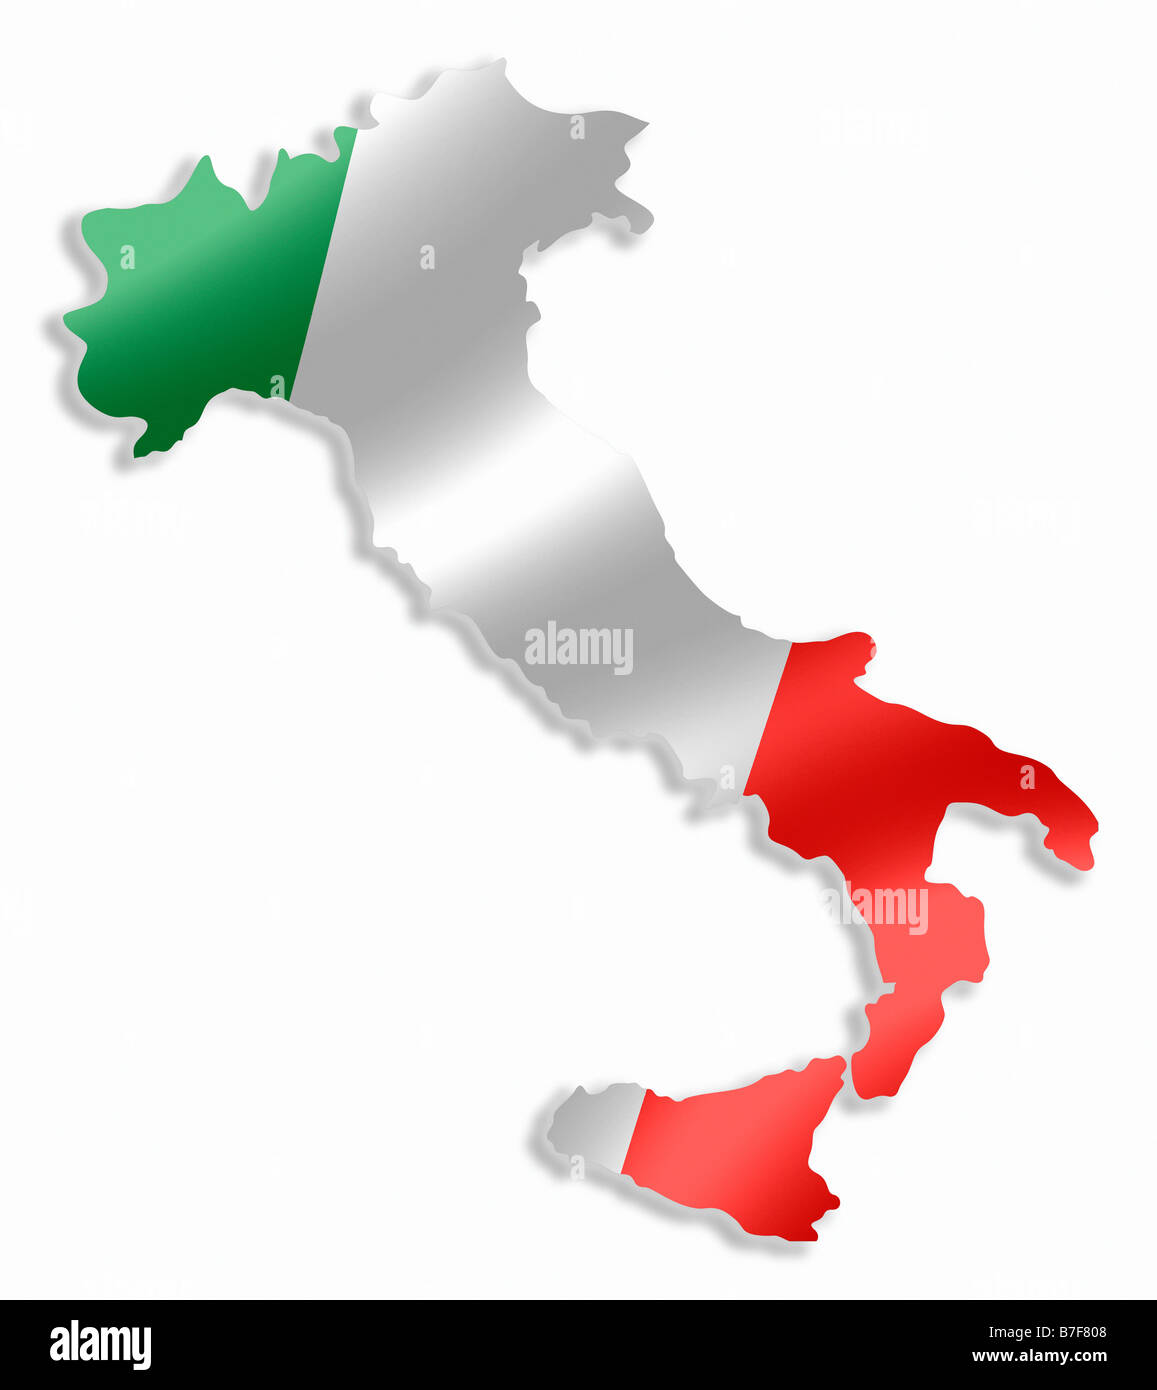 Italy Italian Country Map Outline With National Flag Inside Stock - Italian map